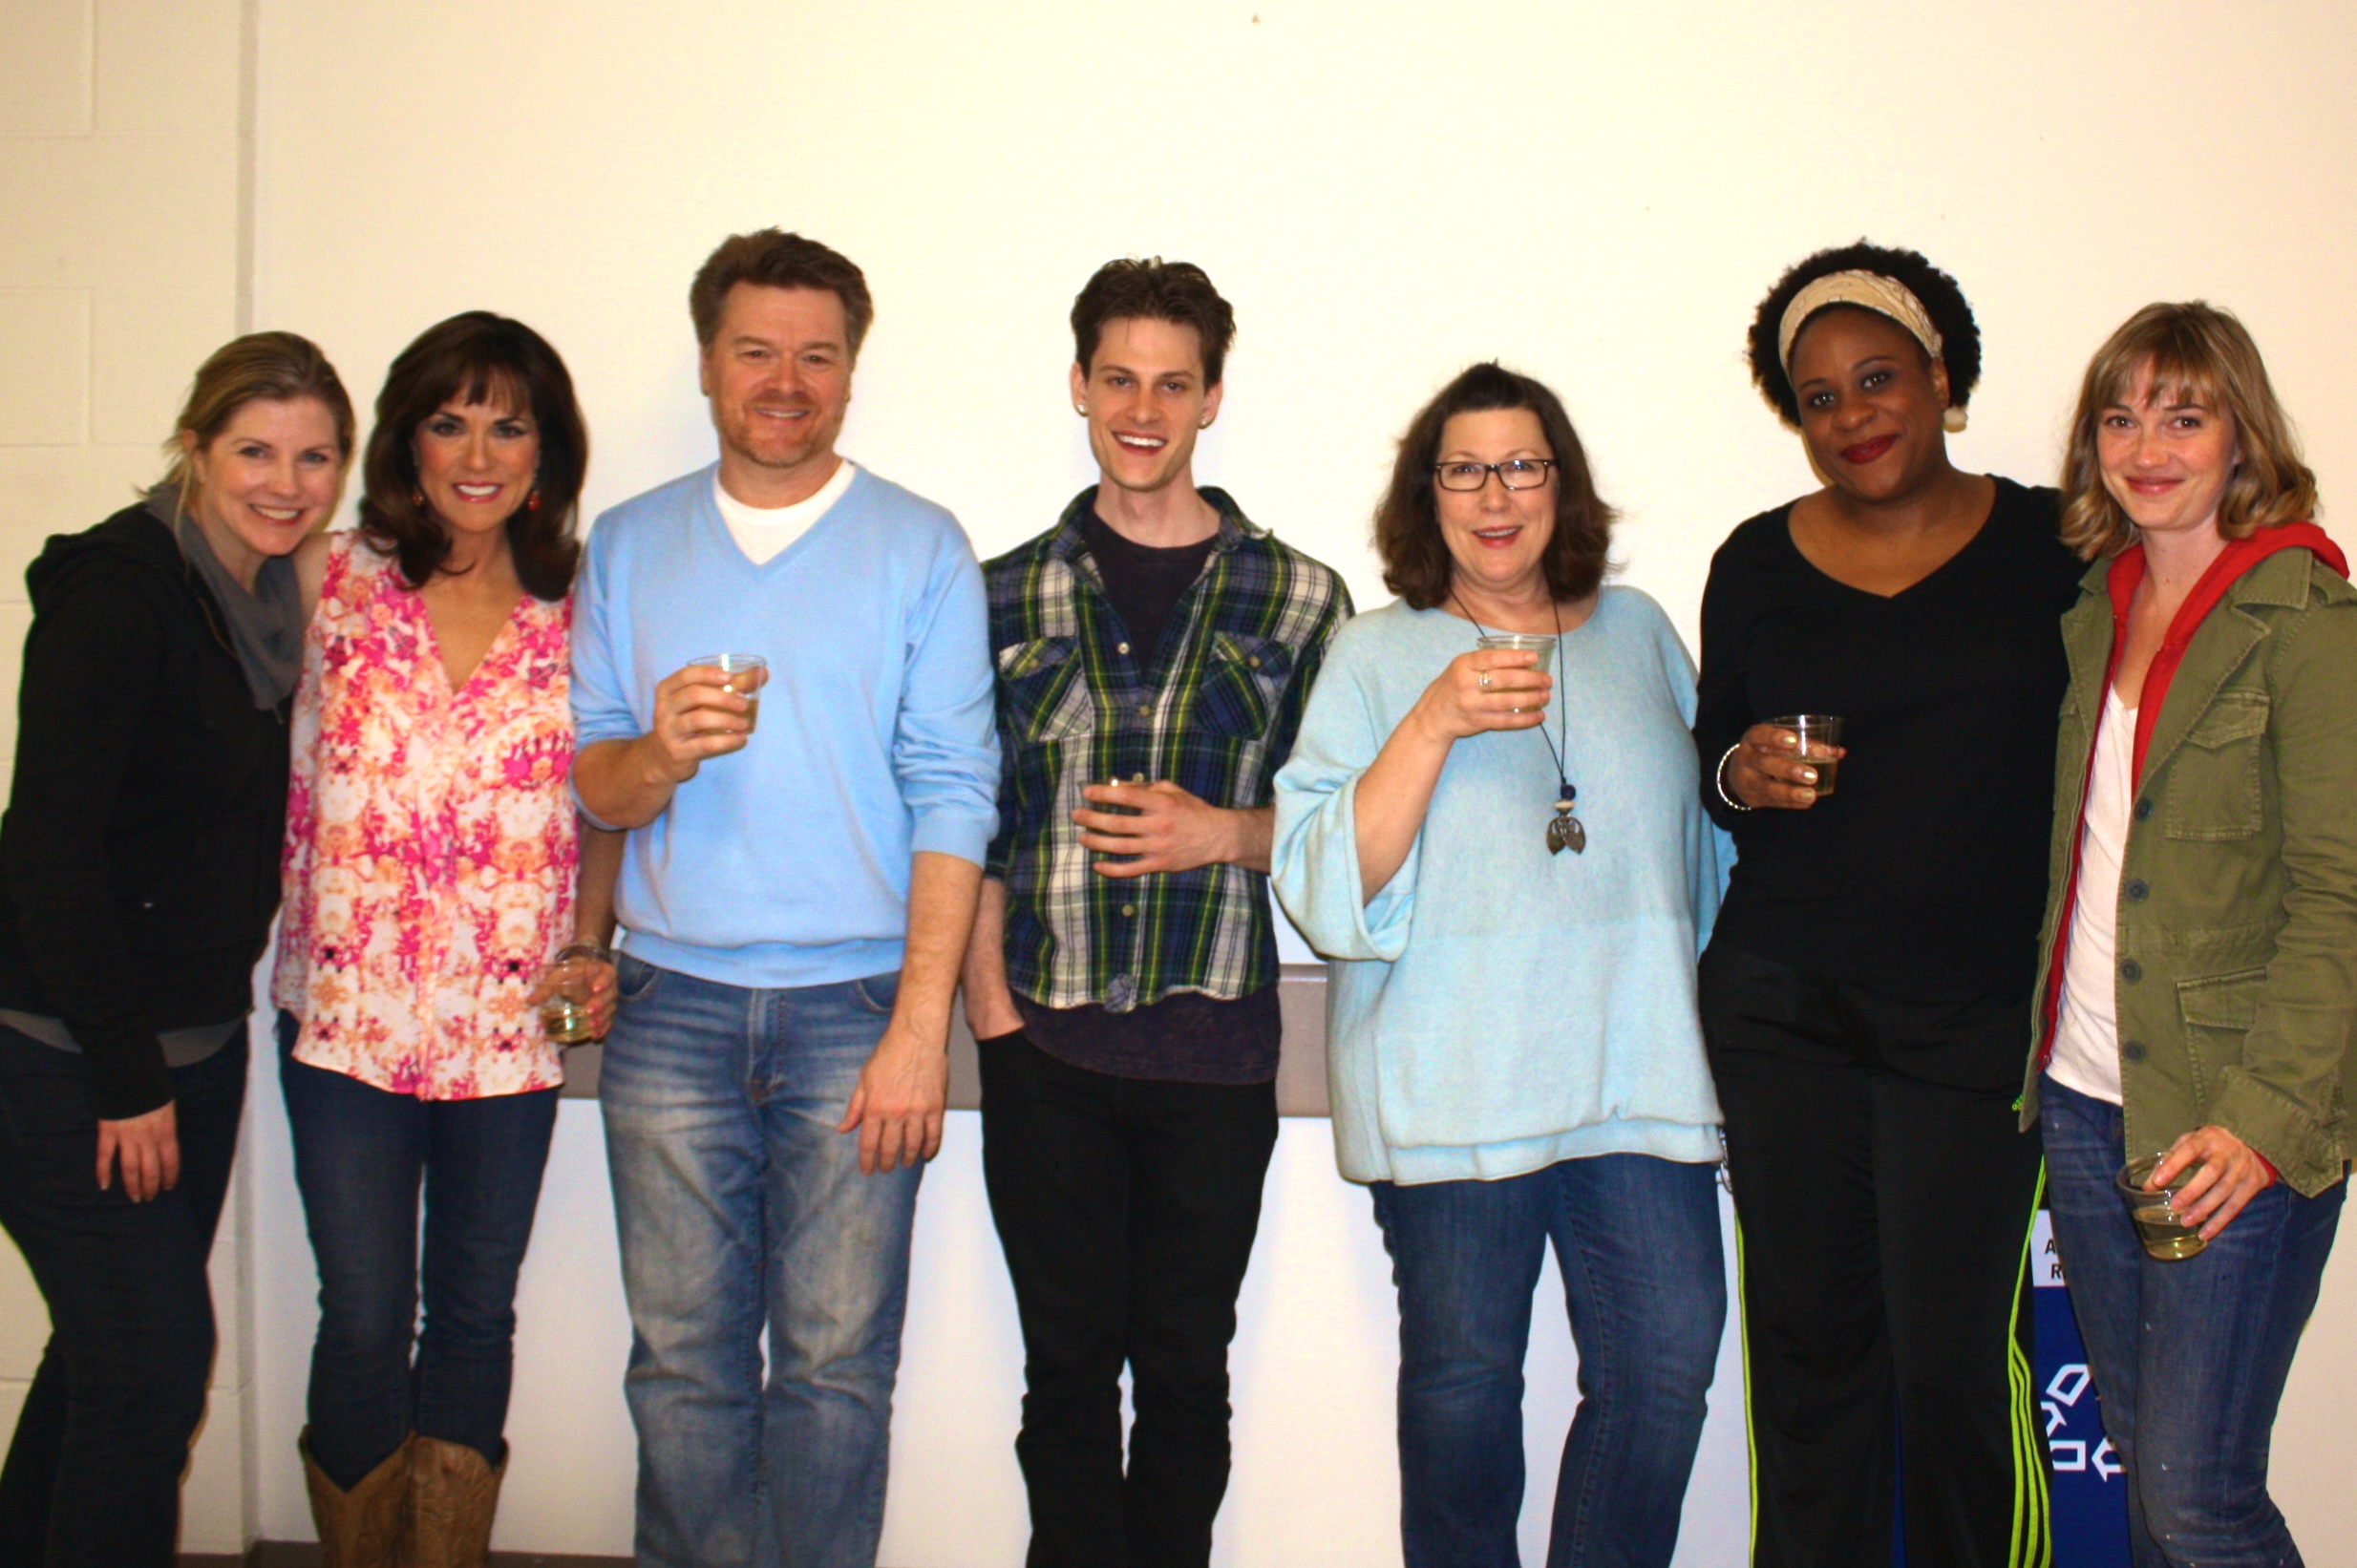 Left to right: Laura Kepley, Artistic Director of The Cleveland Playhouse, Margaret Reed (Masha), John Scherer (Vanya), Gregory Isaac Stone (Spike), Toni DiBuono (Sonia), Danielle Lee Greaves (Cassandra), and Maren Bush (Nina). Closing matinee farewell toast from the lovely and wonderful staff CPH staff. A great time was had by all of us because we were so very well taken care of. Thank you, you Tony Award winners!!! April 26, 2015.